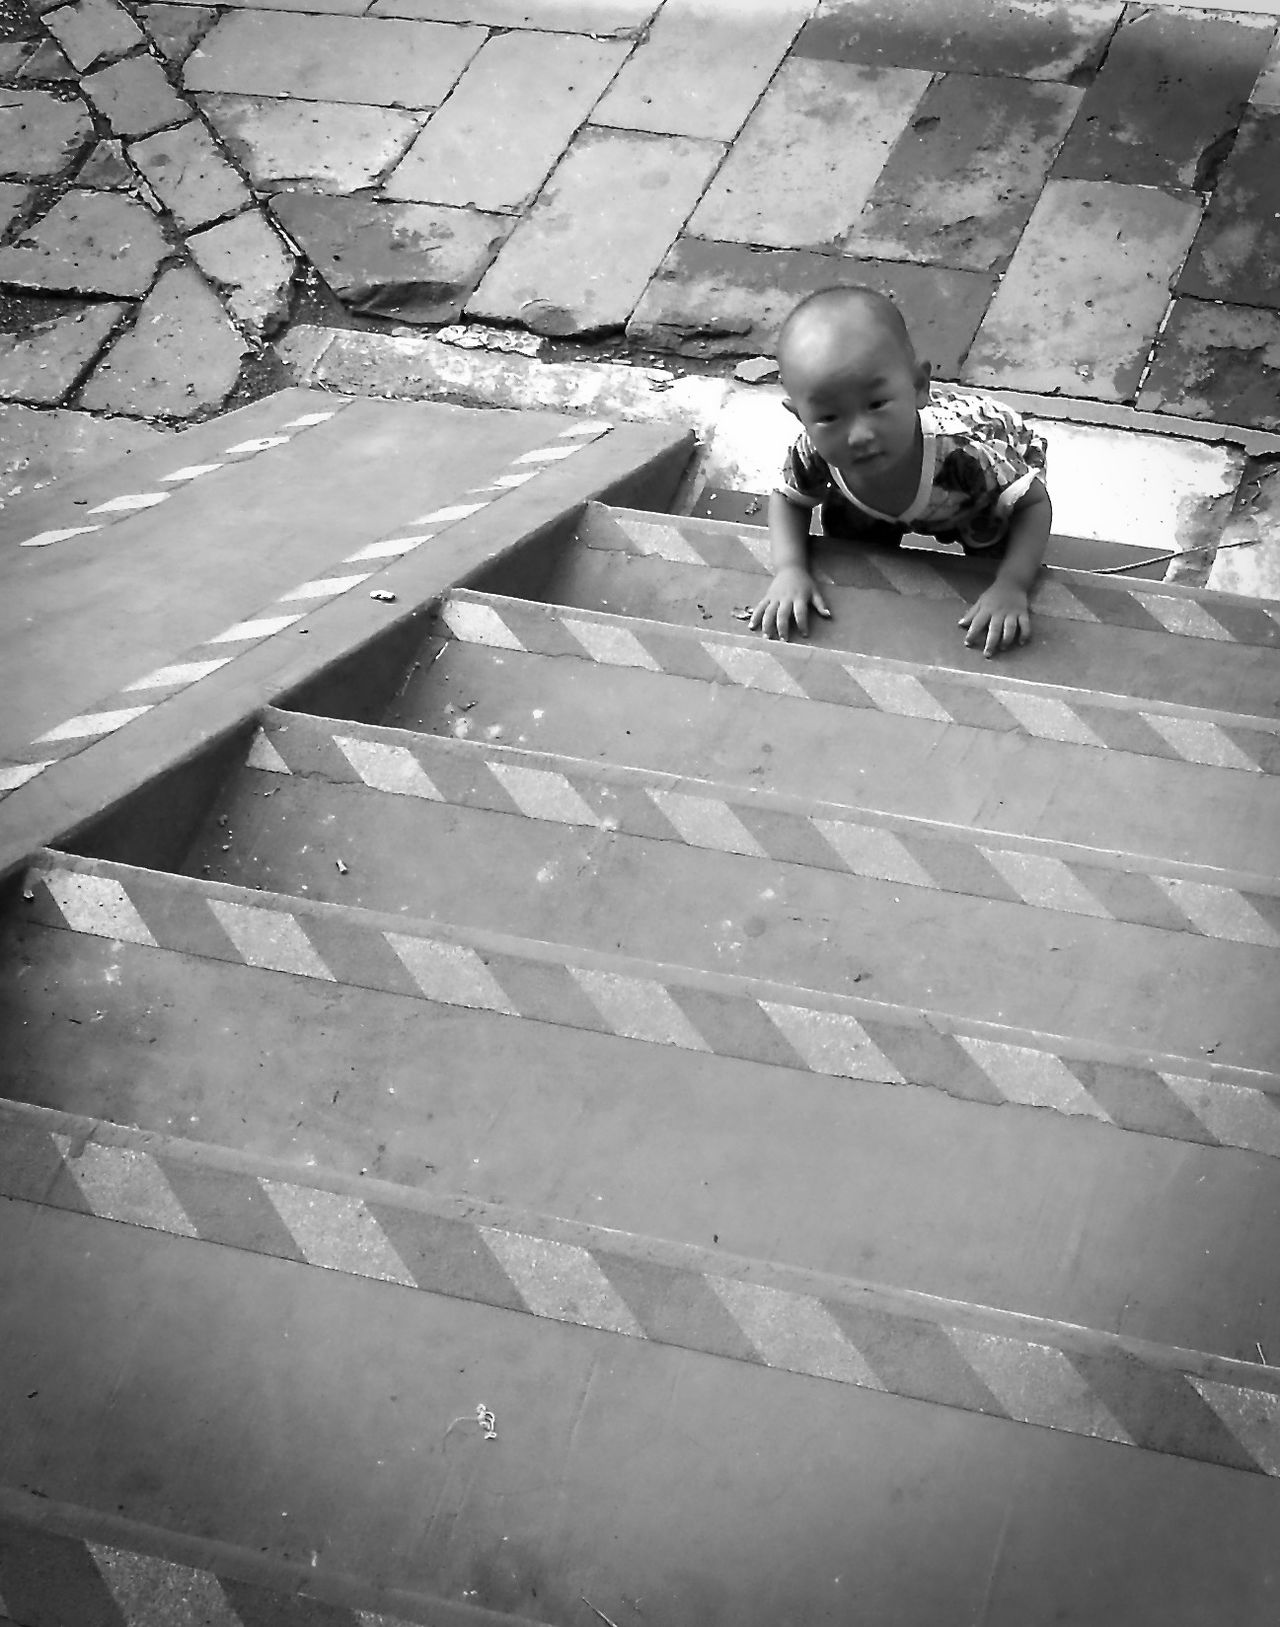 Beijing Children Climbing Keep On Going Stairs The Way Forward There We Go You Can Do It A Bird's Eye View Wait For Me Black And White